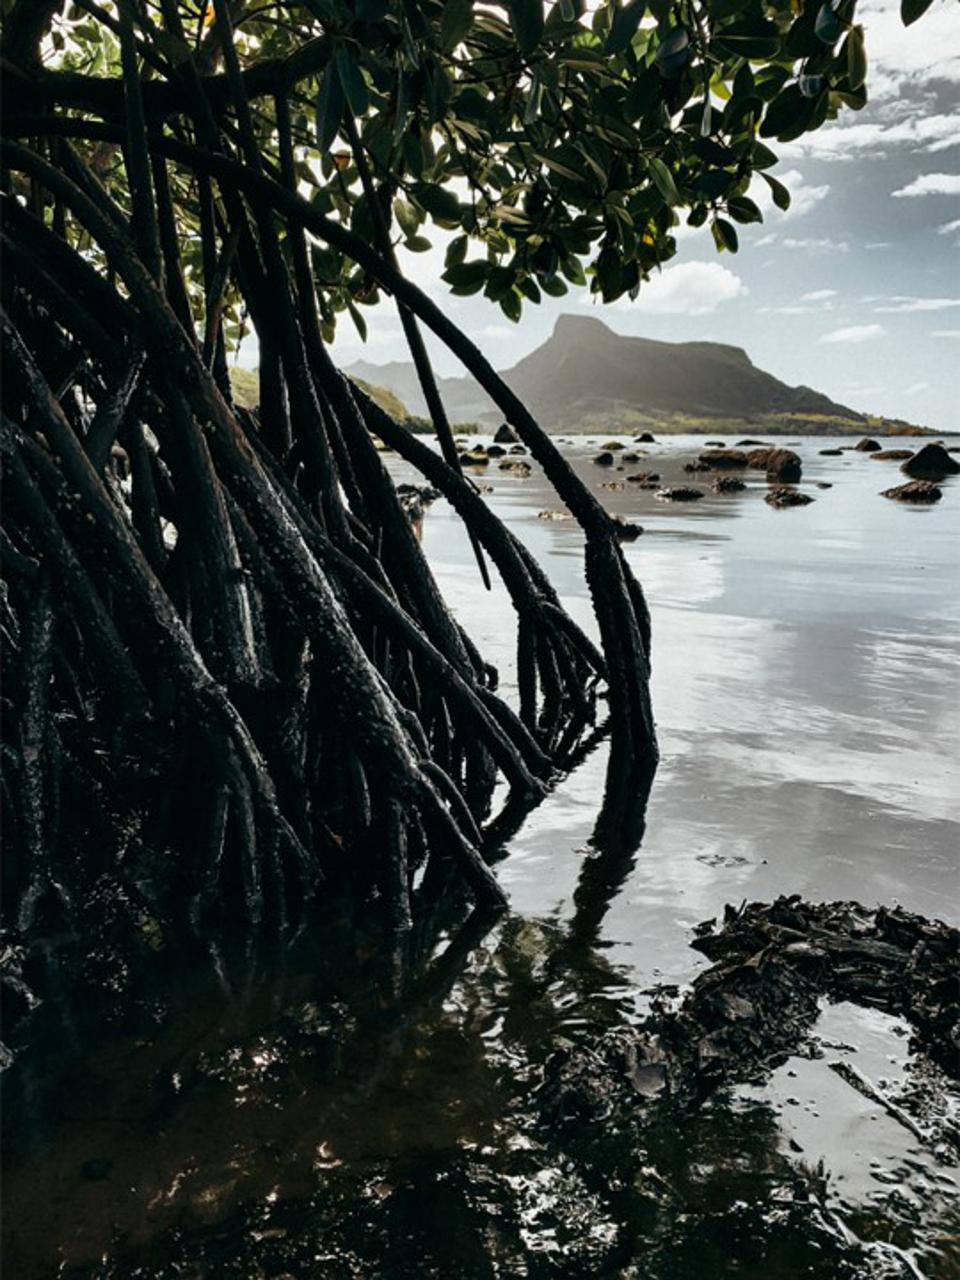 9 August 2020: the protected mangrove forests around the South East coast of Mauritius that are important spawning grounds for reef fish are drenched in oil